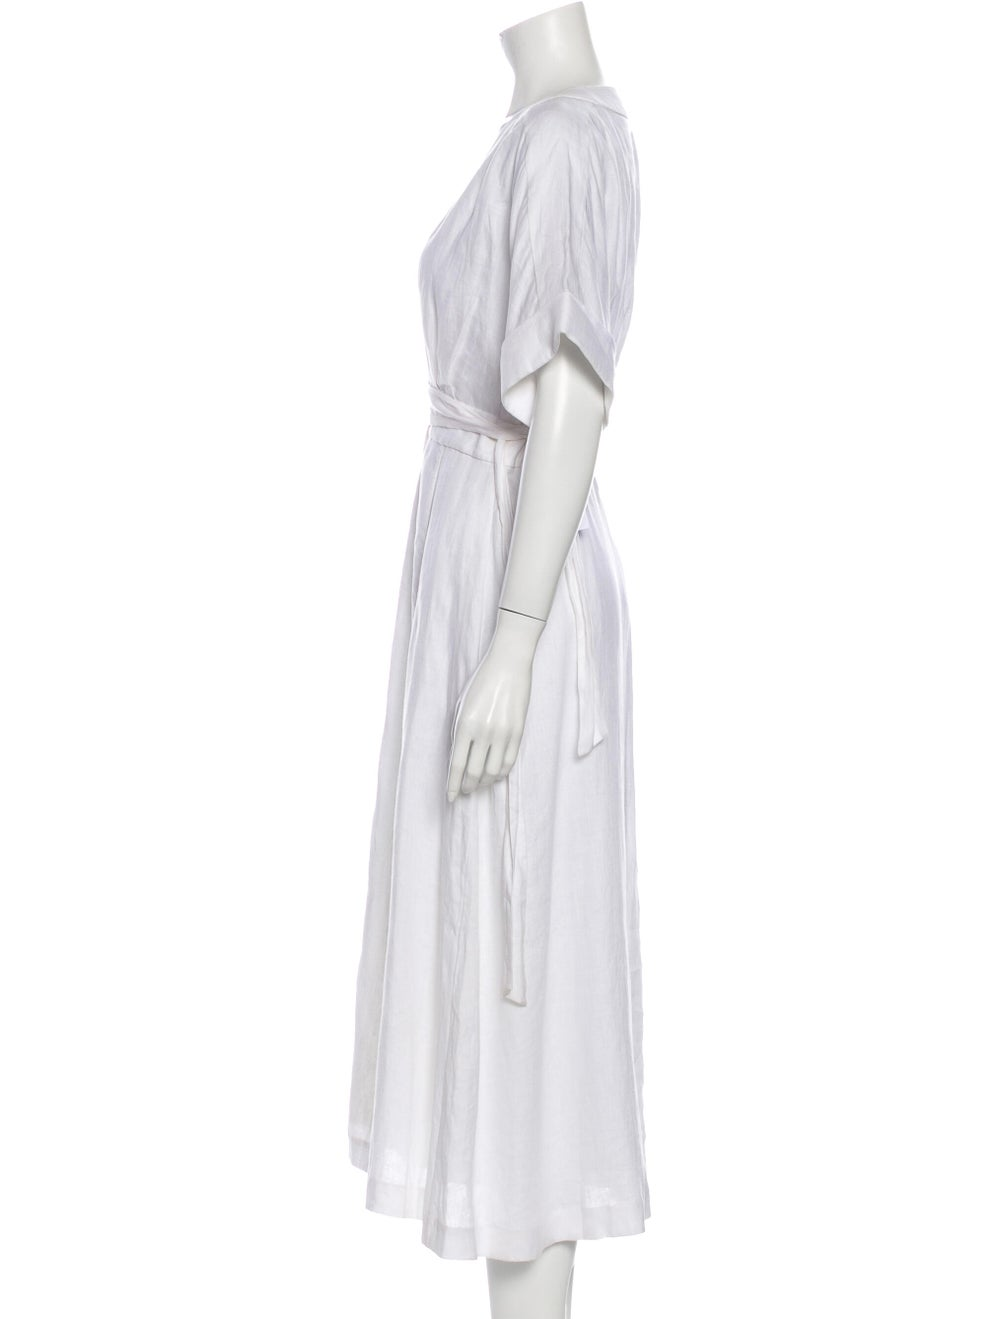 Reformation Linen Long Dress w/ Tags White - image 2